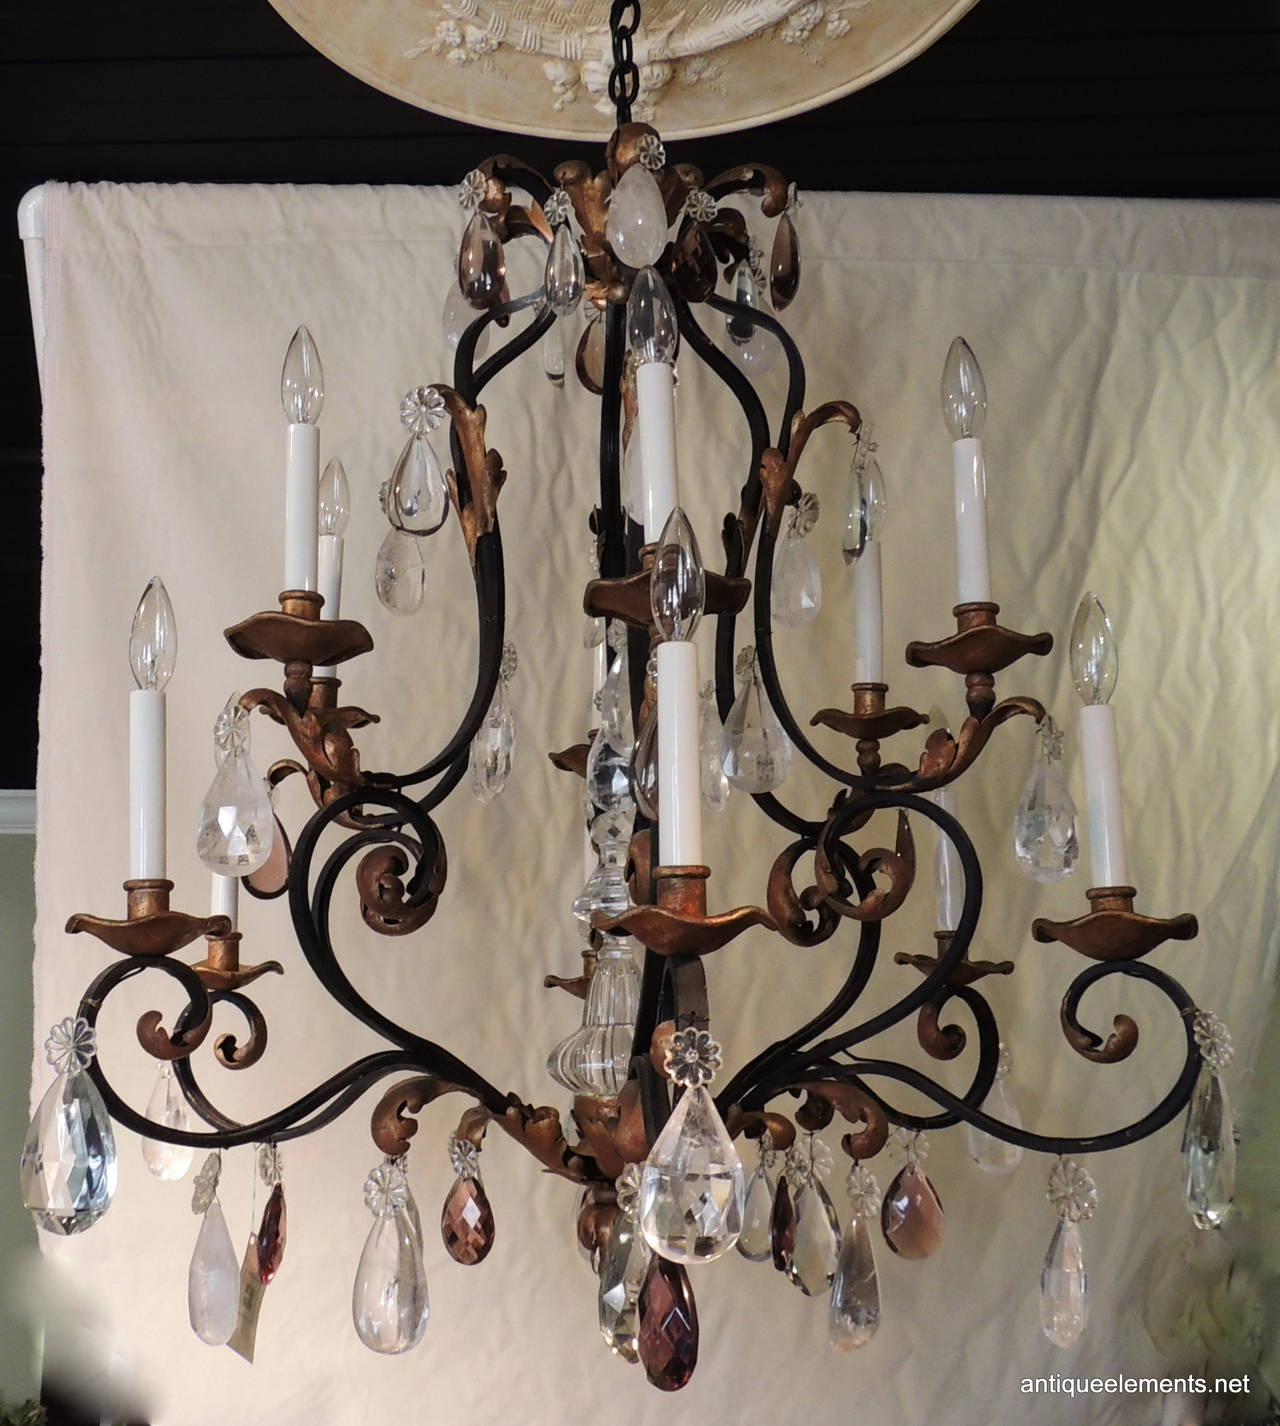 Beautiful large wrought iron and gilt chandelier with amethyst and belle poque beautiful large wrought iron gilt chandelier with amethyst rock crystals arubaitofo Images